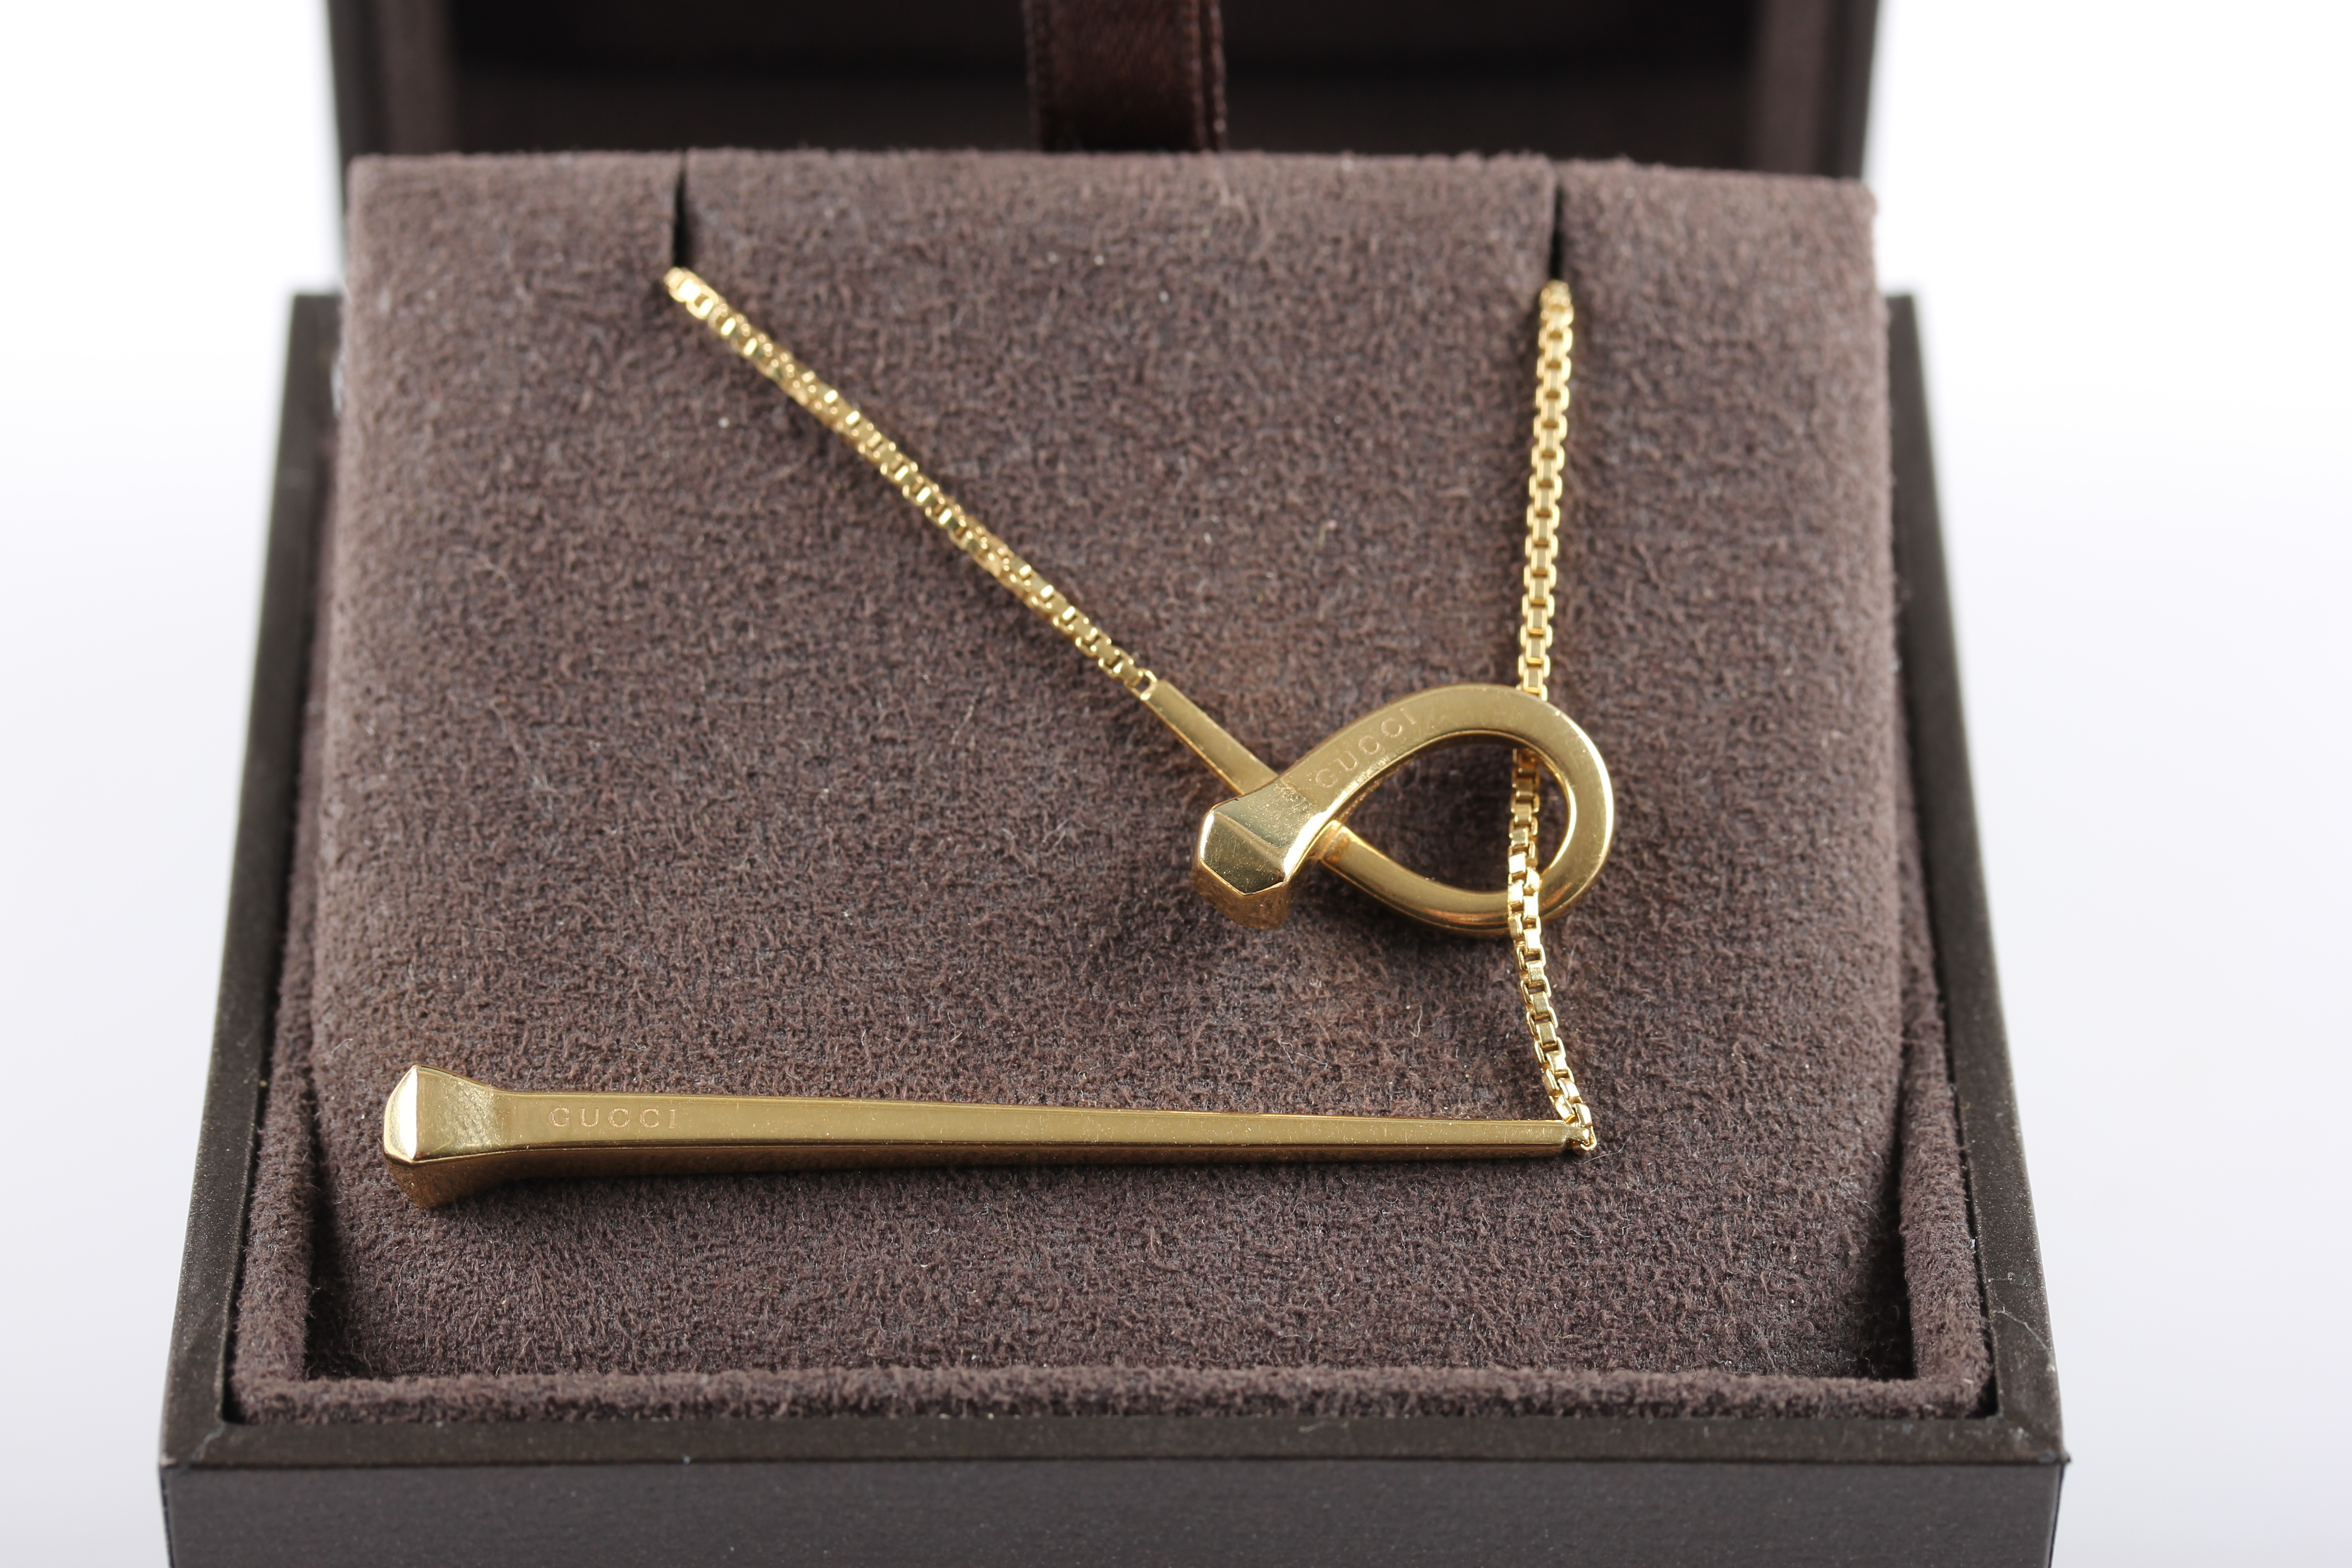 Lot 13 - A hallmarked 18ct yellow gold Gucci necklet, the tapered bar and loop design stamped GUCCI, housed